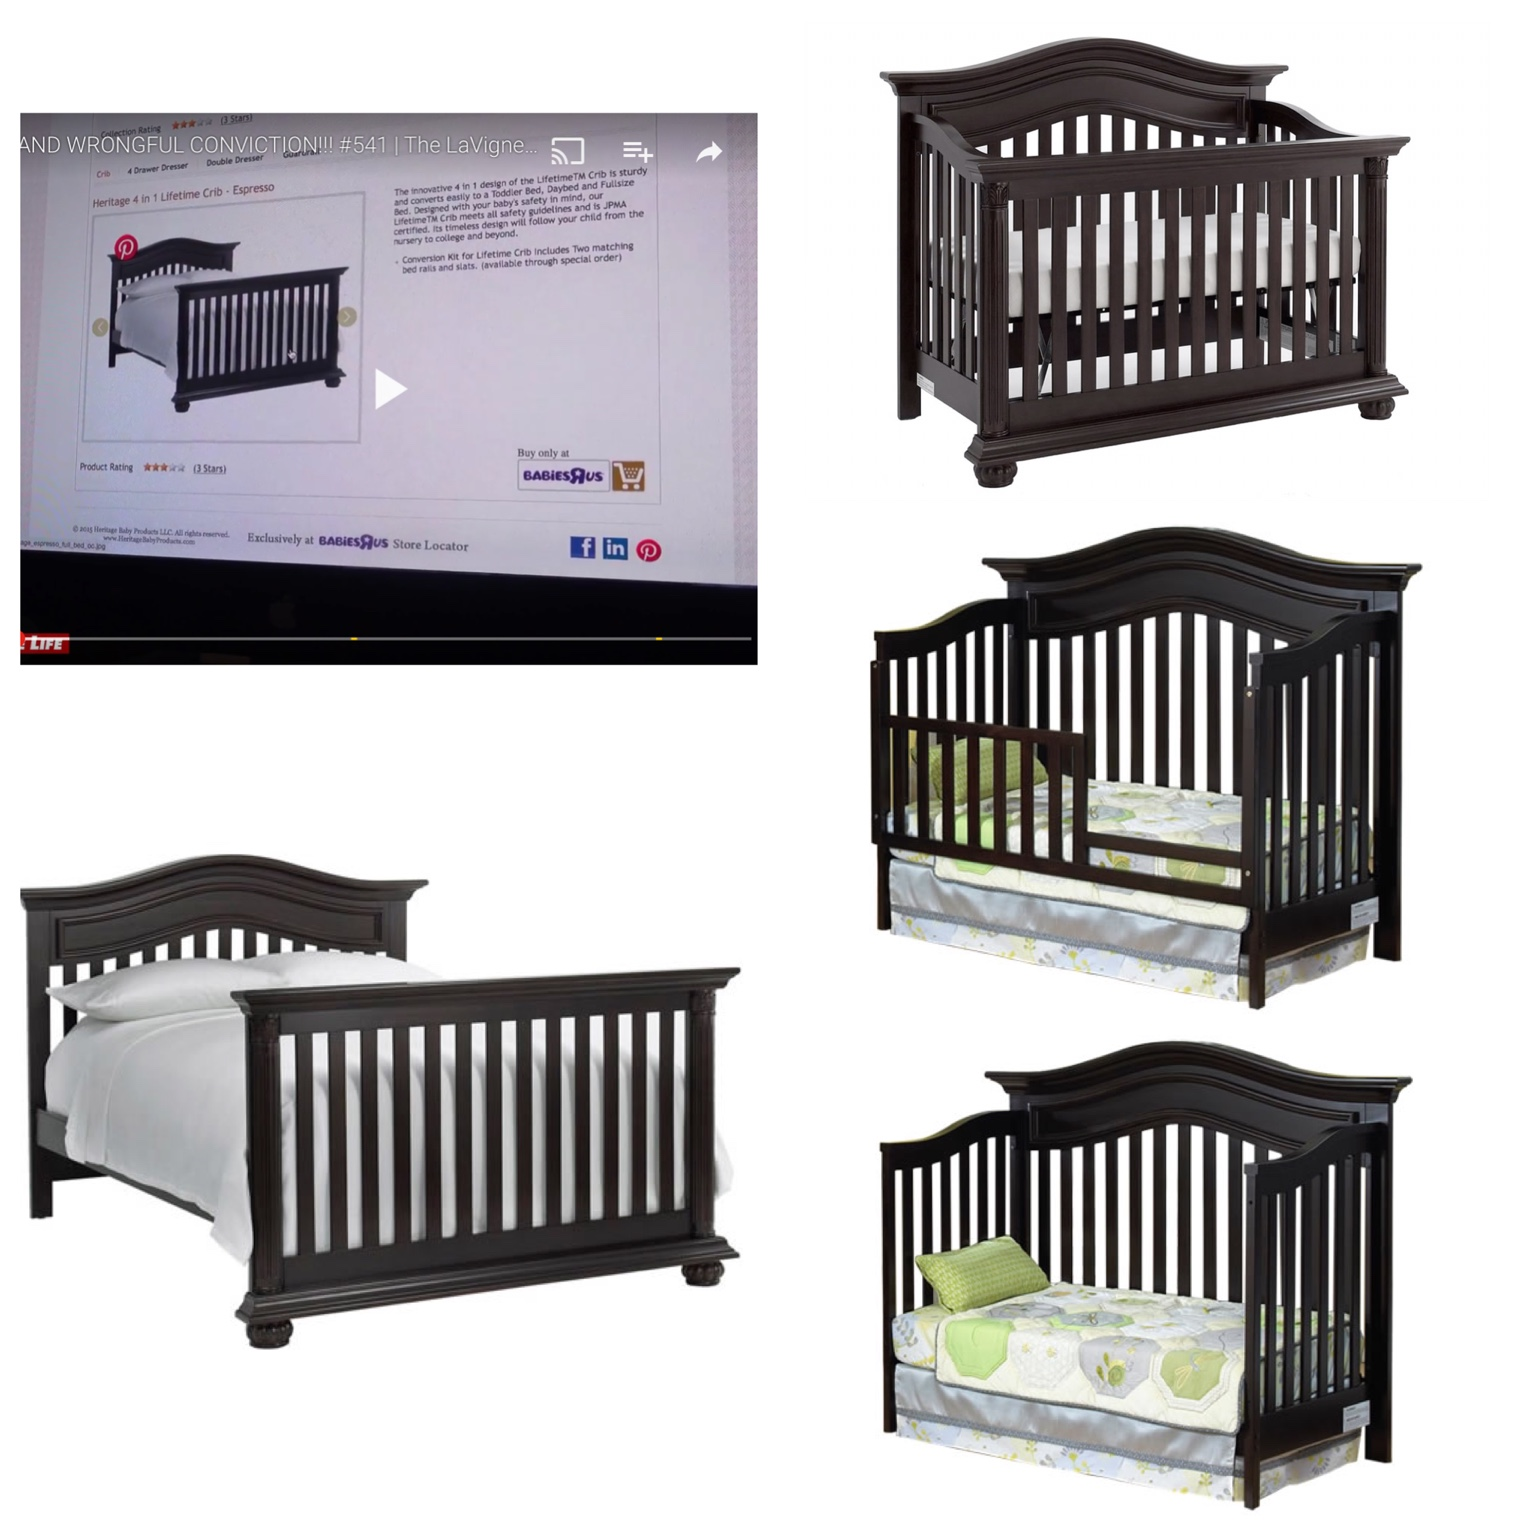 Baby bed for two year old -  Both At Age Where They Can Now Both Use Toddler Beds But Their Parents Are Turning The Crib Into A Fullsize Bed Which Is To Big For An Almost 3yr Old